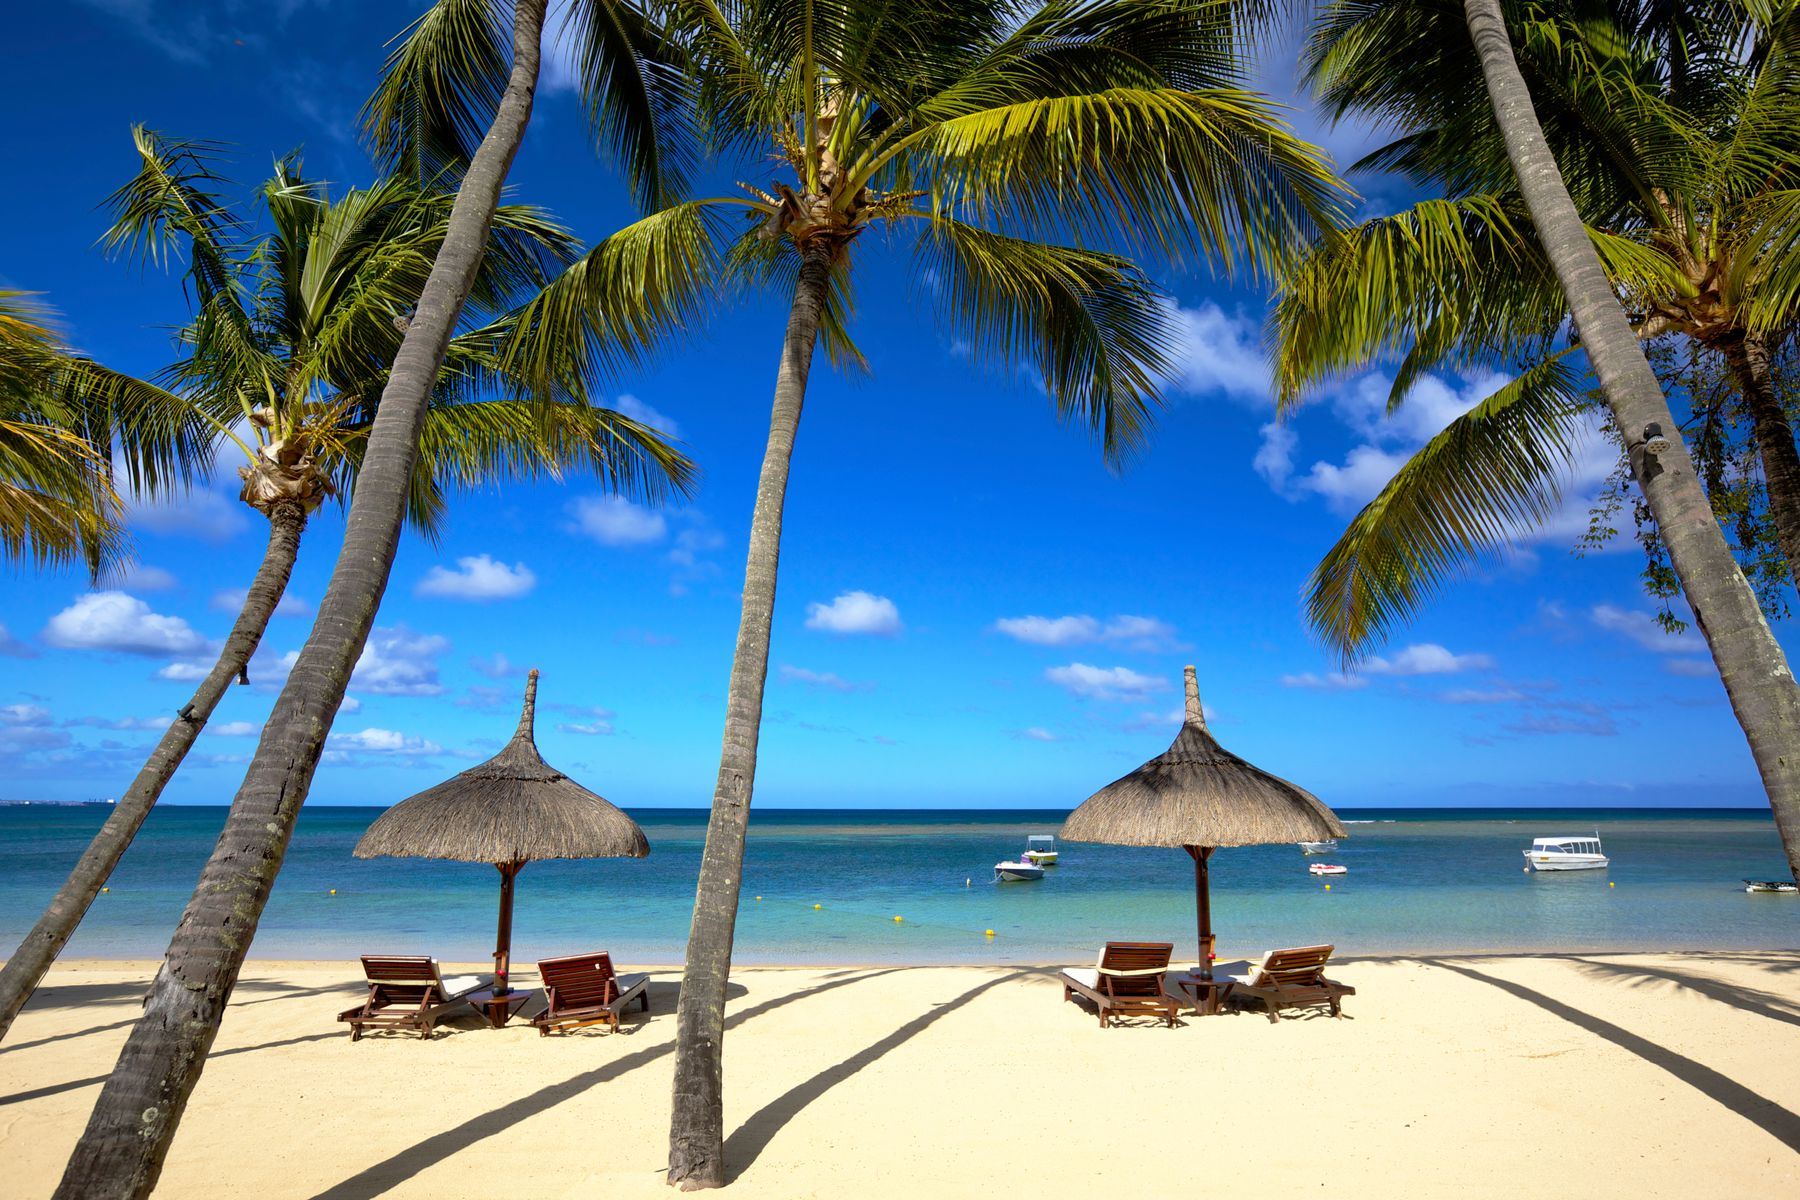 A beach in Mauritius, ideal for January holidays